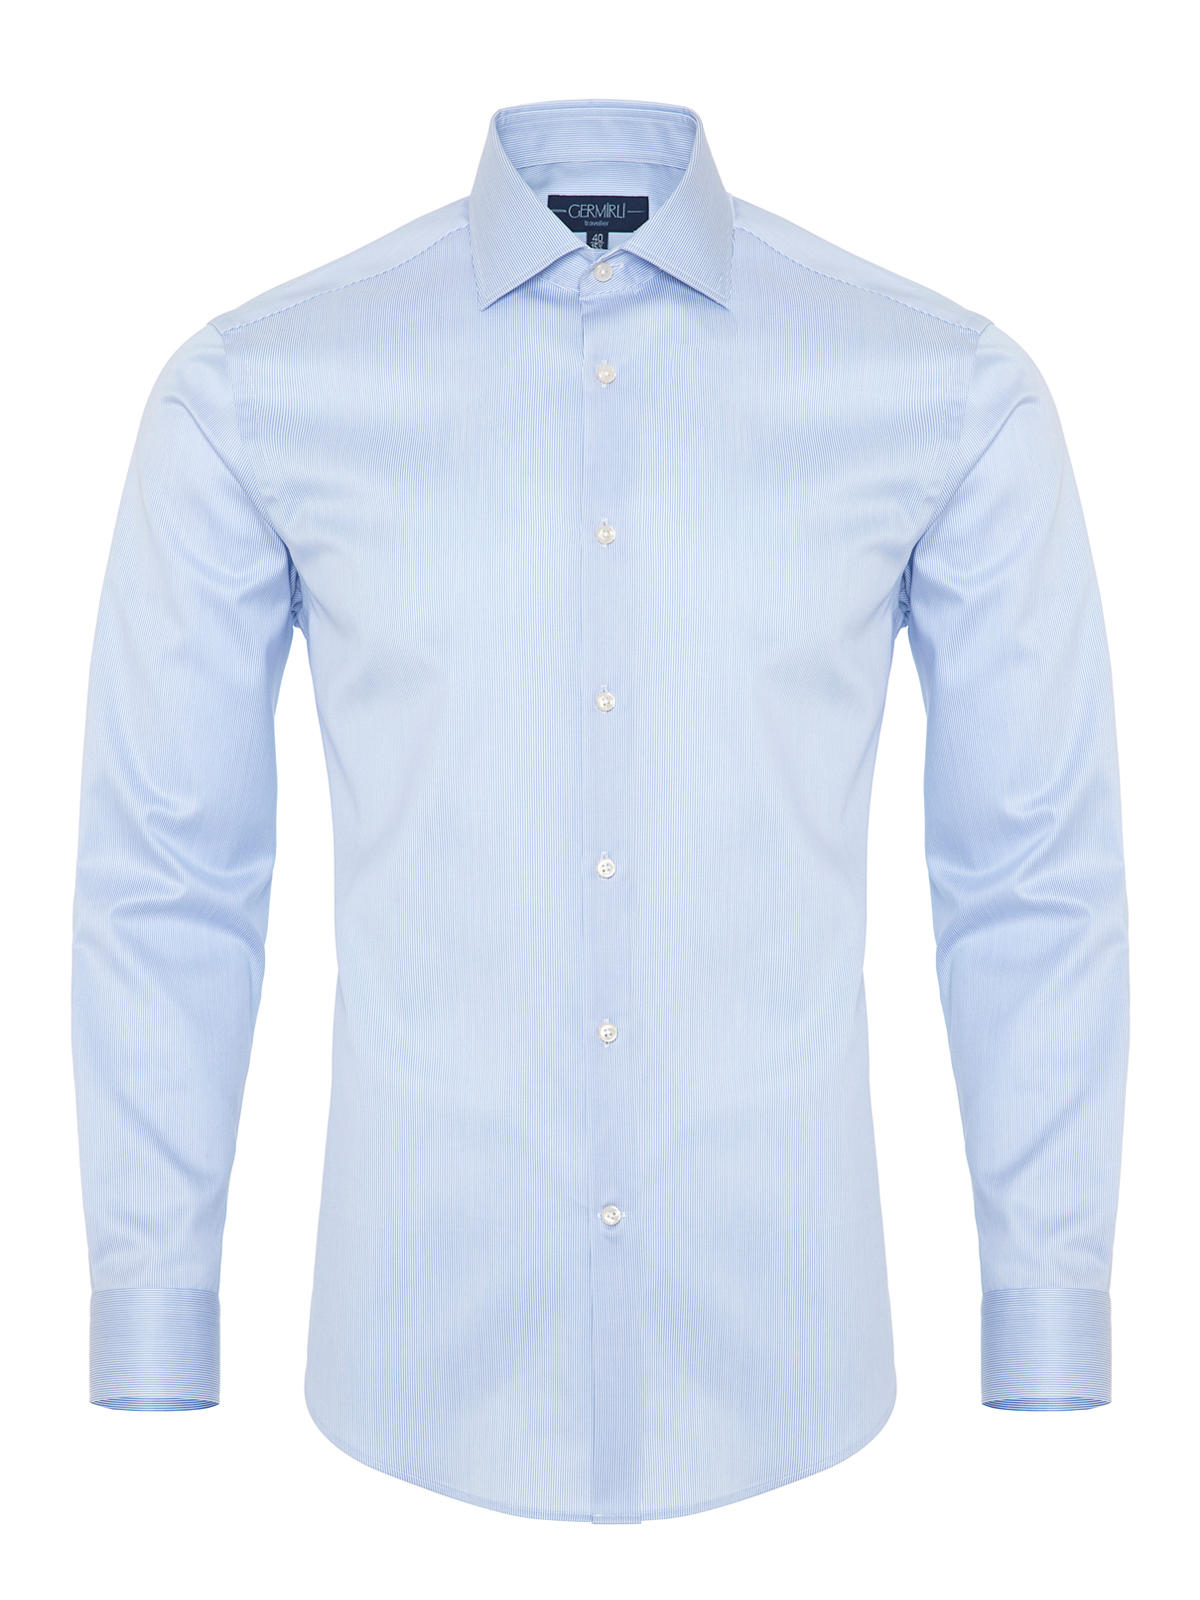 Germirli Non Iron Blue White Semi Spread Tailor Fit Journey Shirt